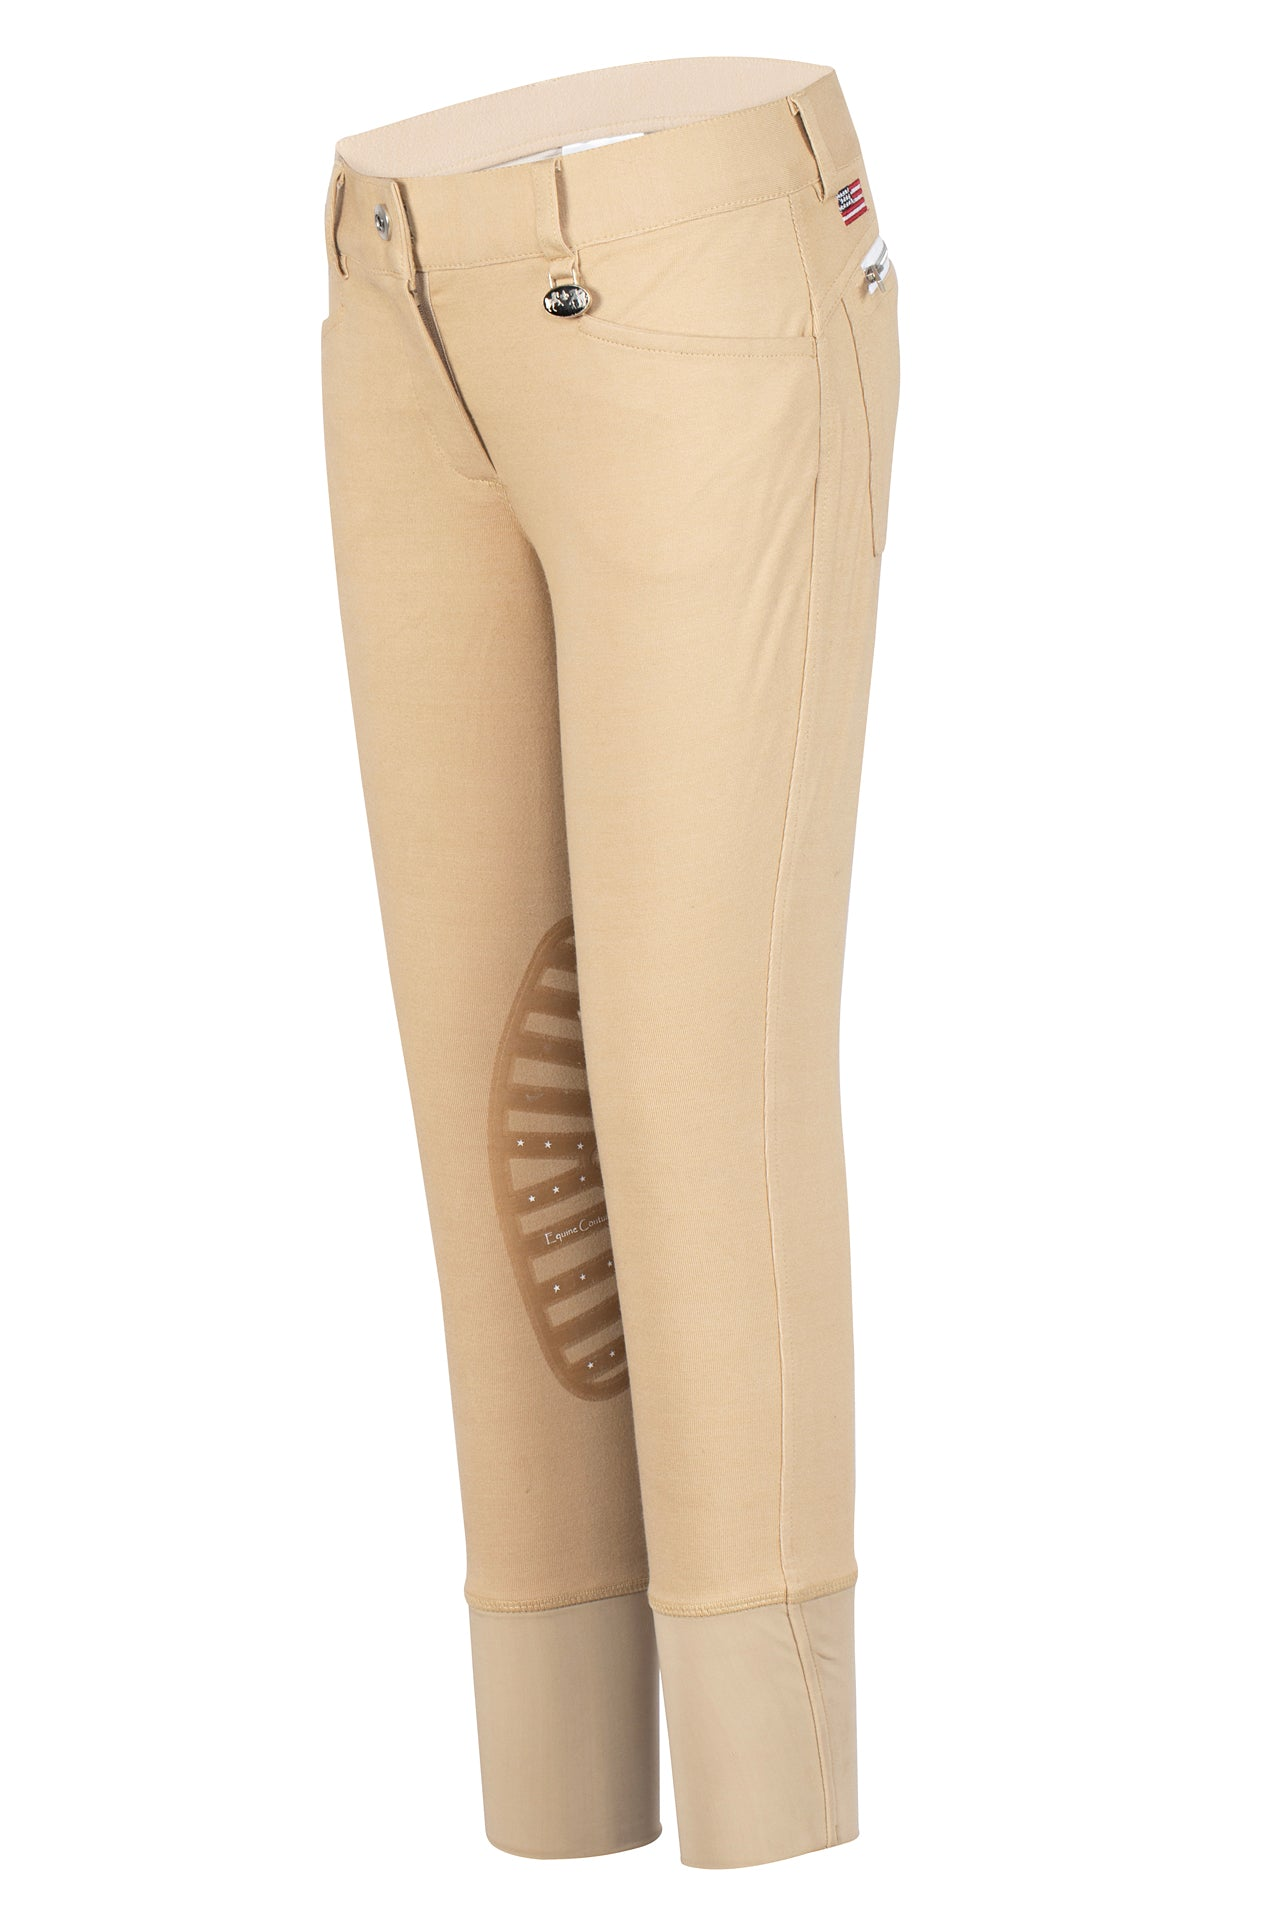 Equine Couture Children's All Star Knee Patch Breeches_169